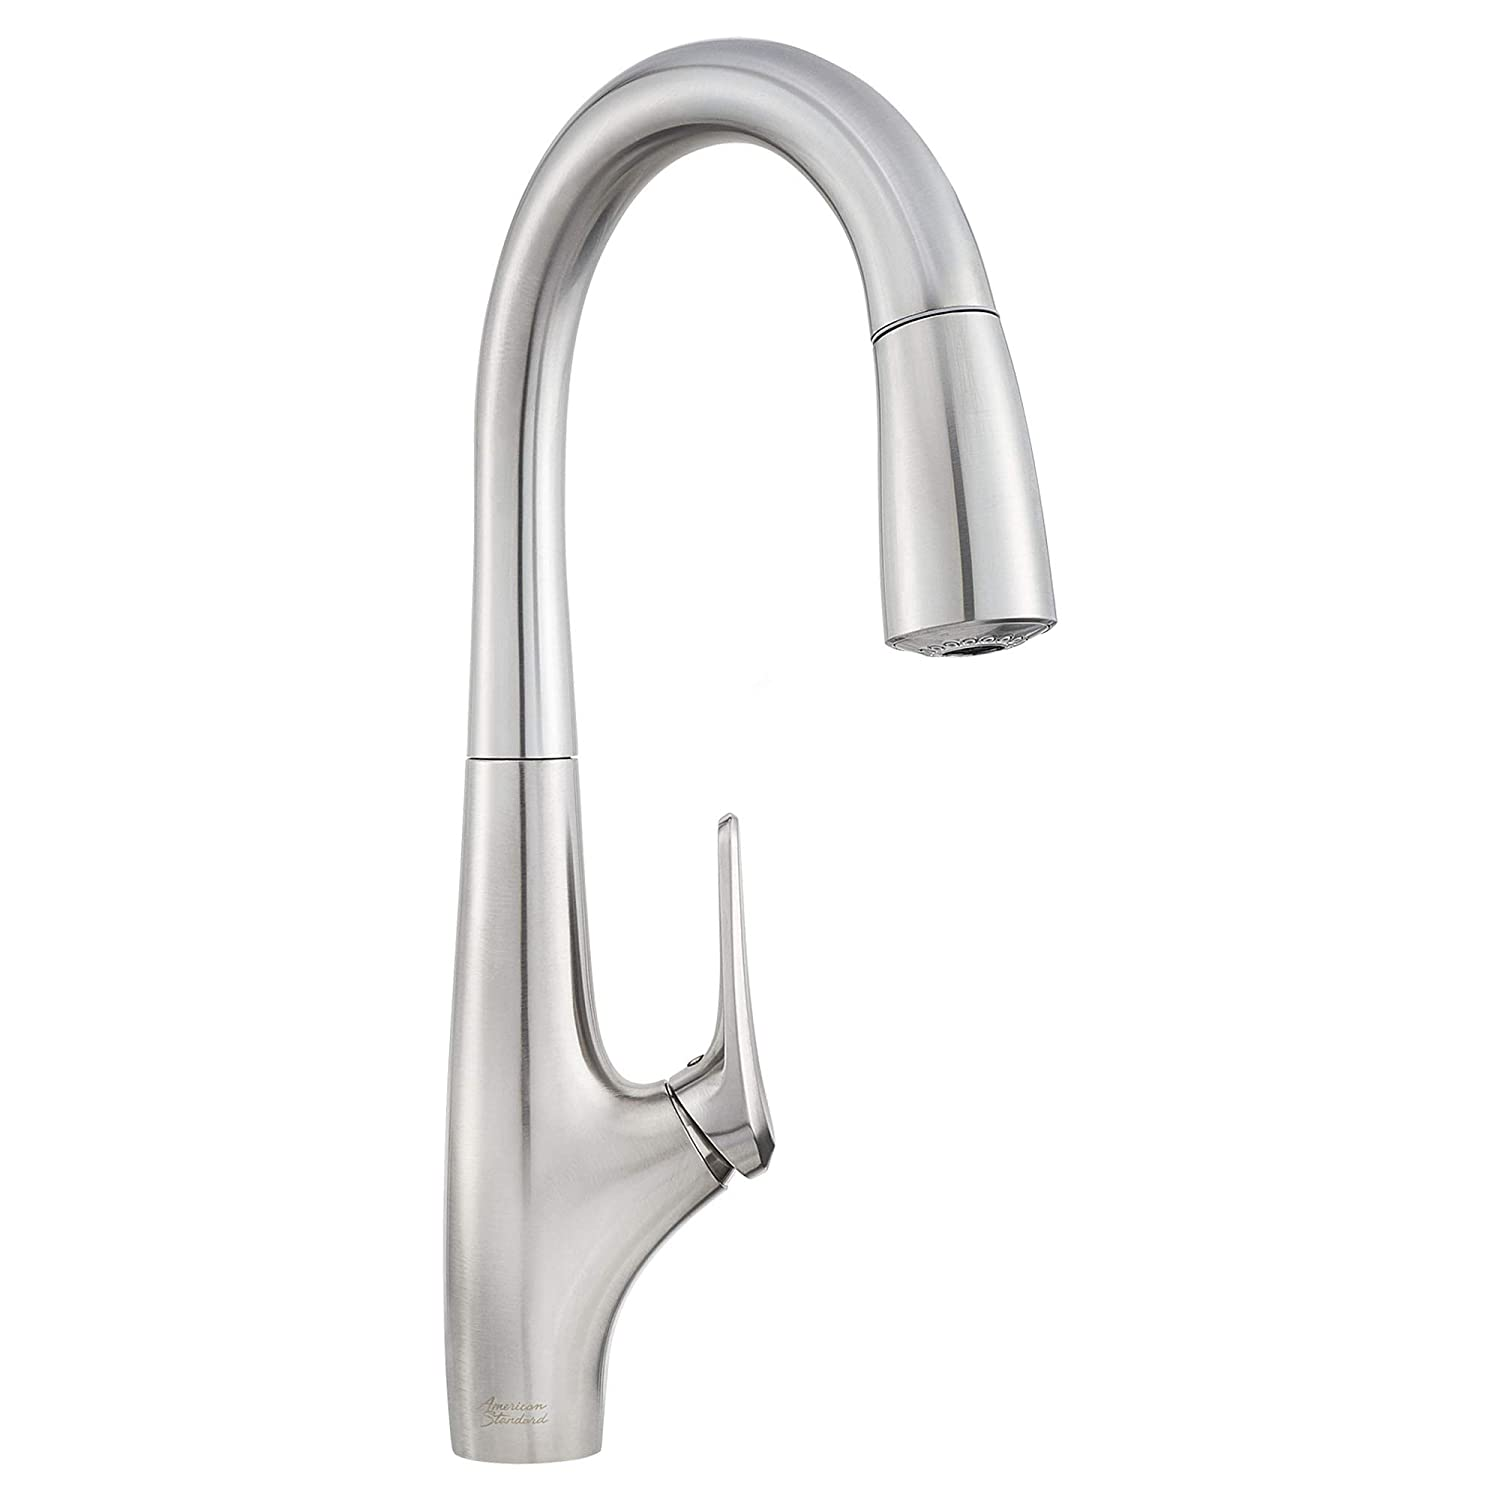 American Standard 4901300.075 Avery Pull-Down Kitchen Faucet, Stainless Steel